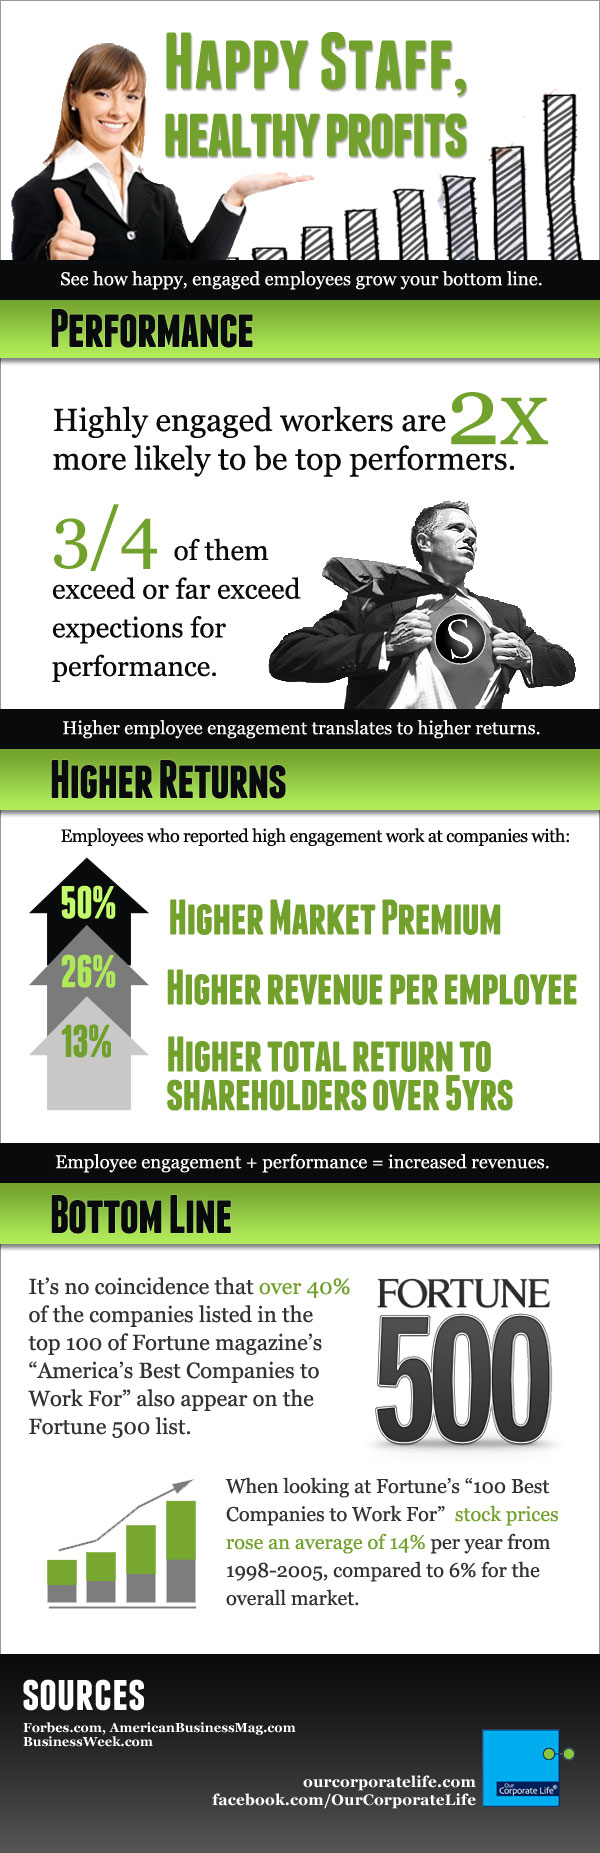 Infographic Our Corporate Life Happy Staff Healthy Profits